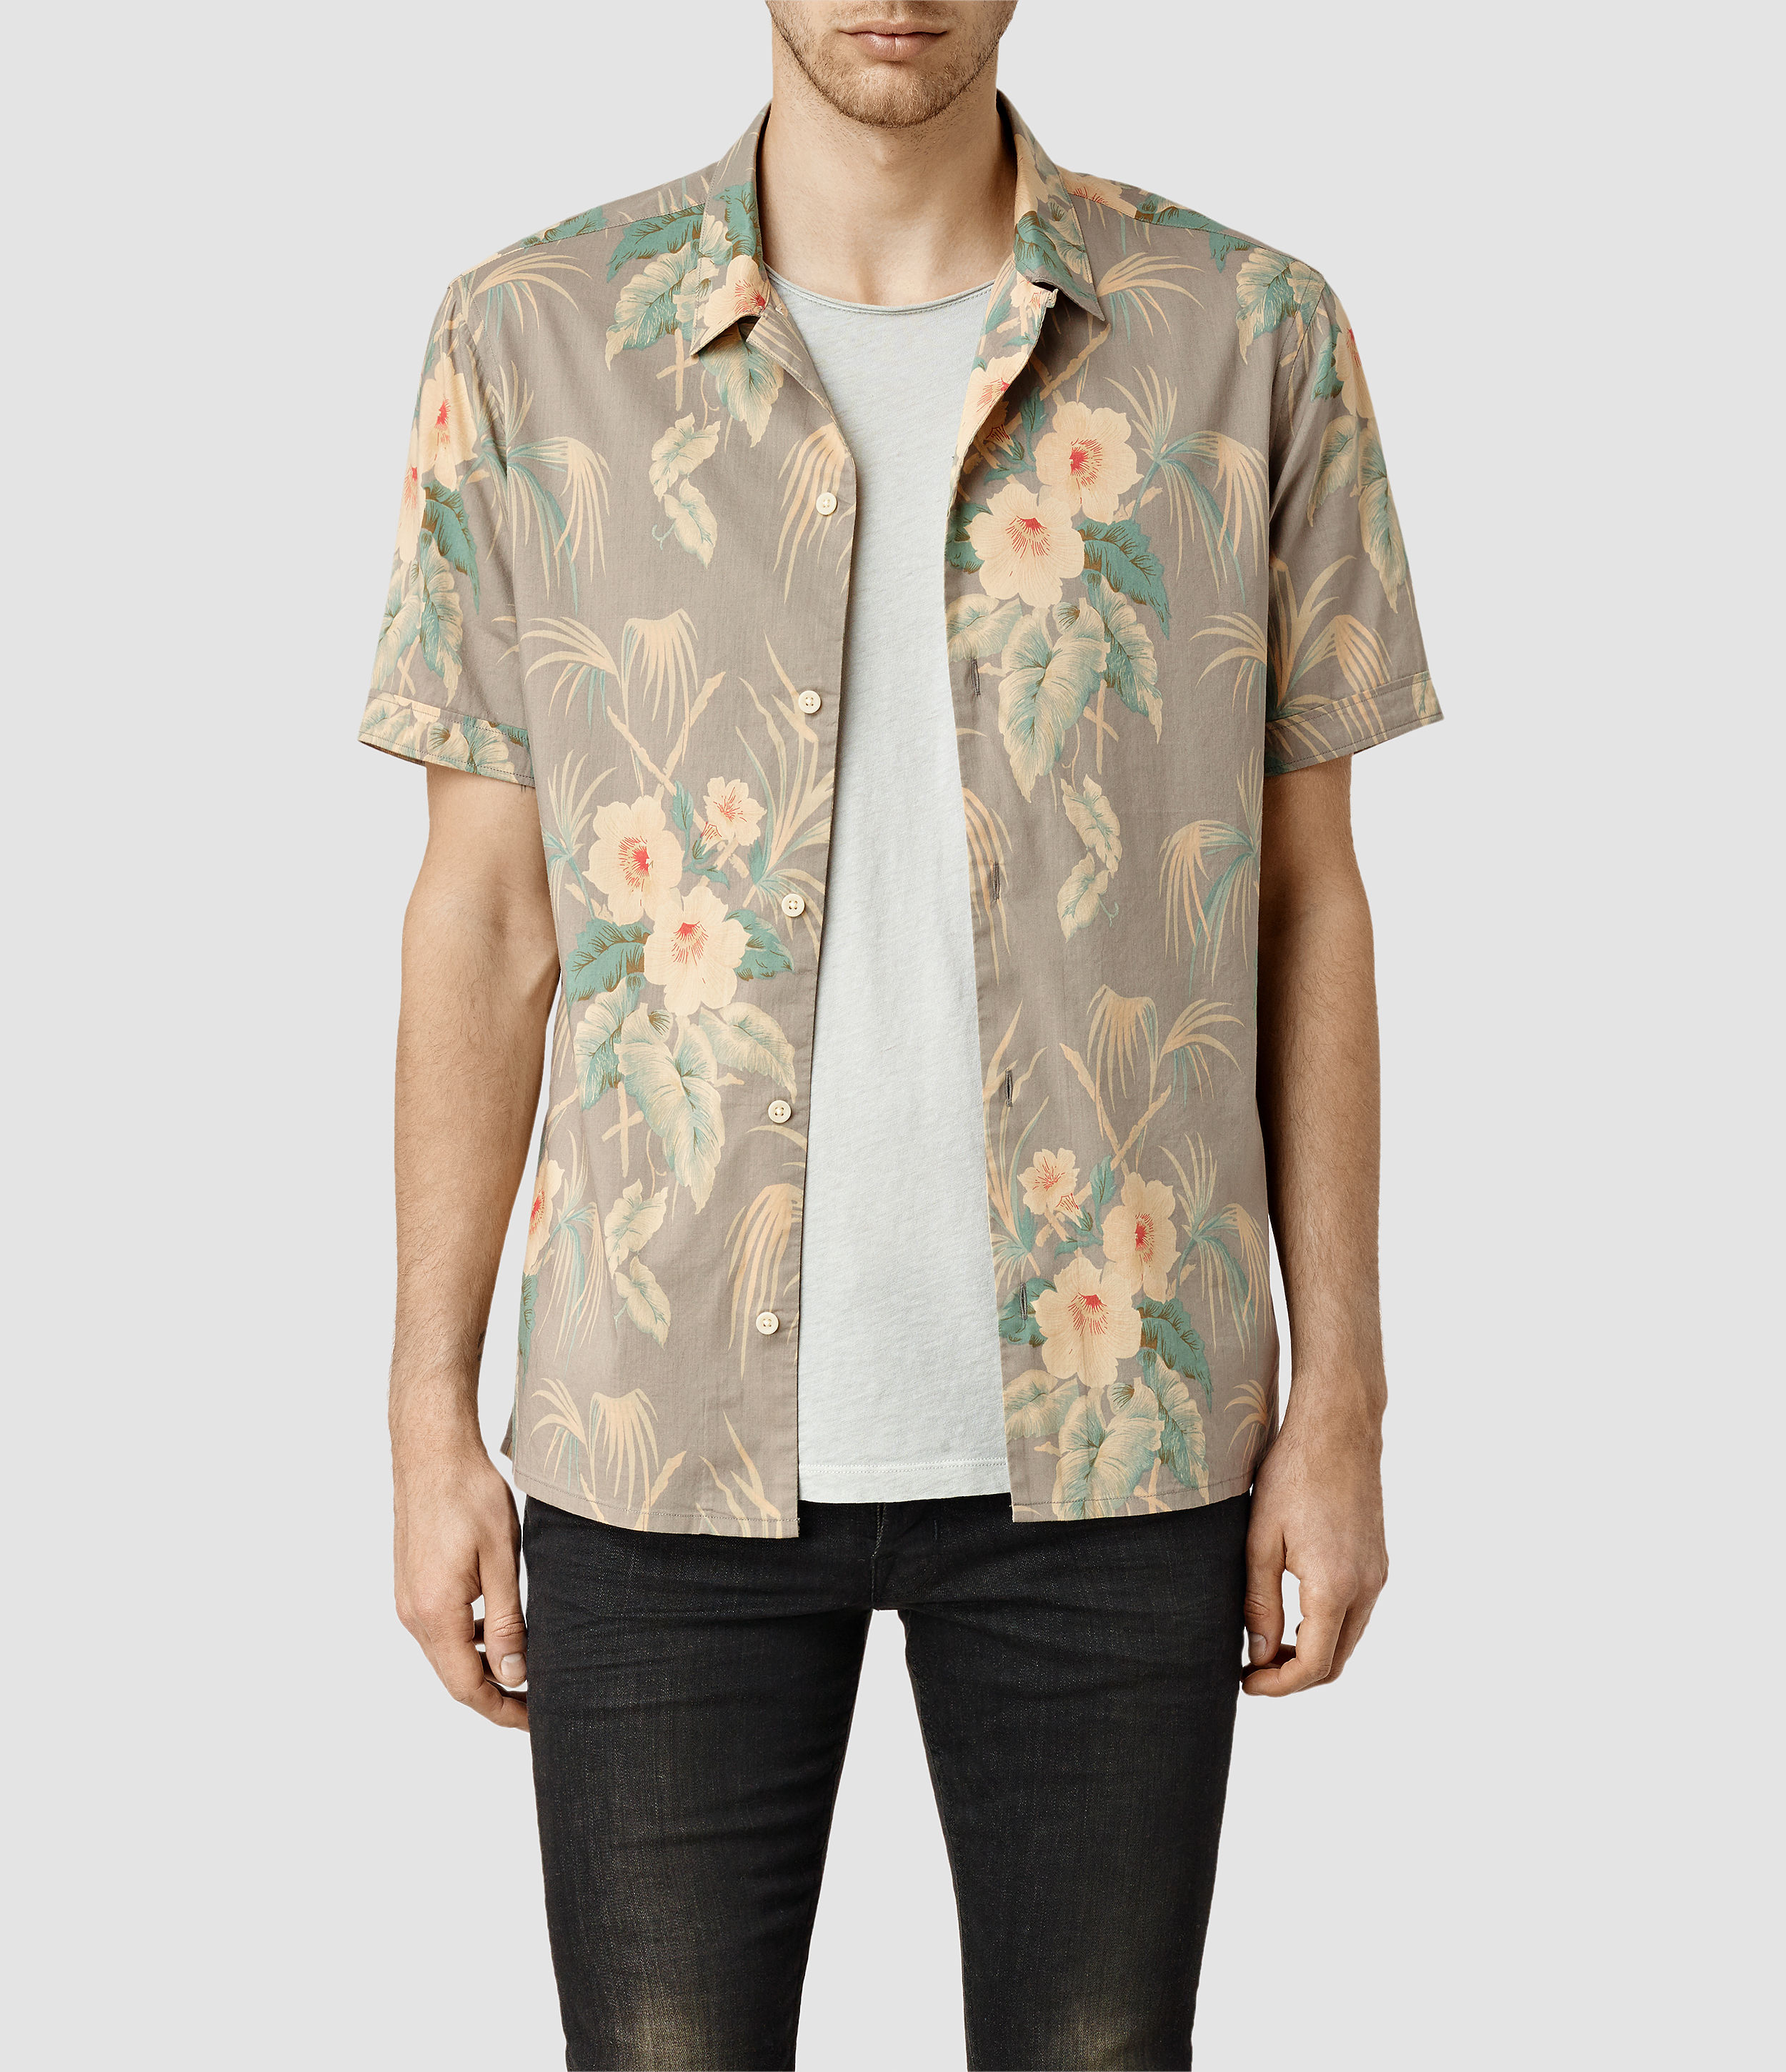 All saints clothing online